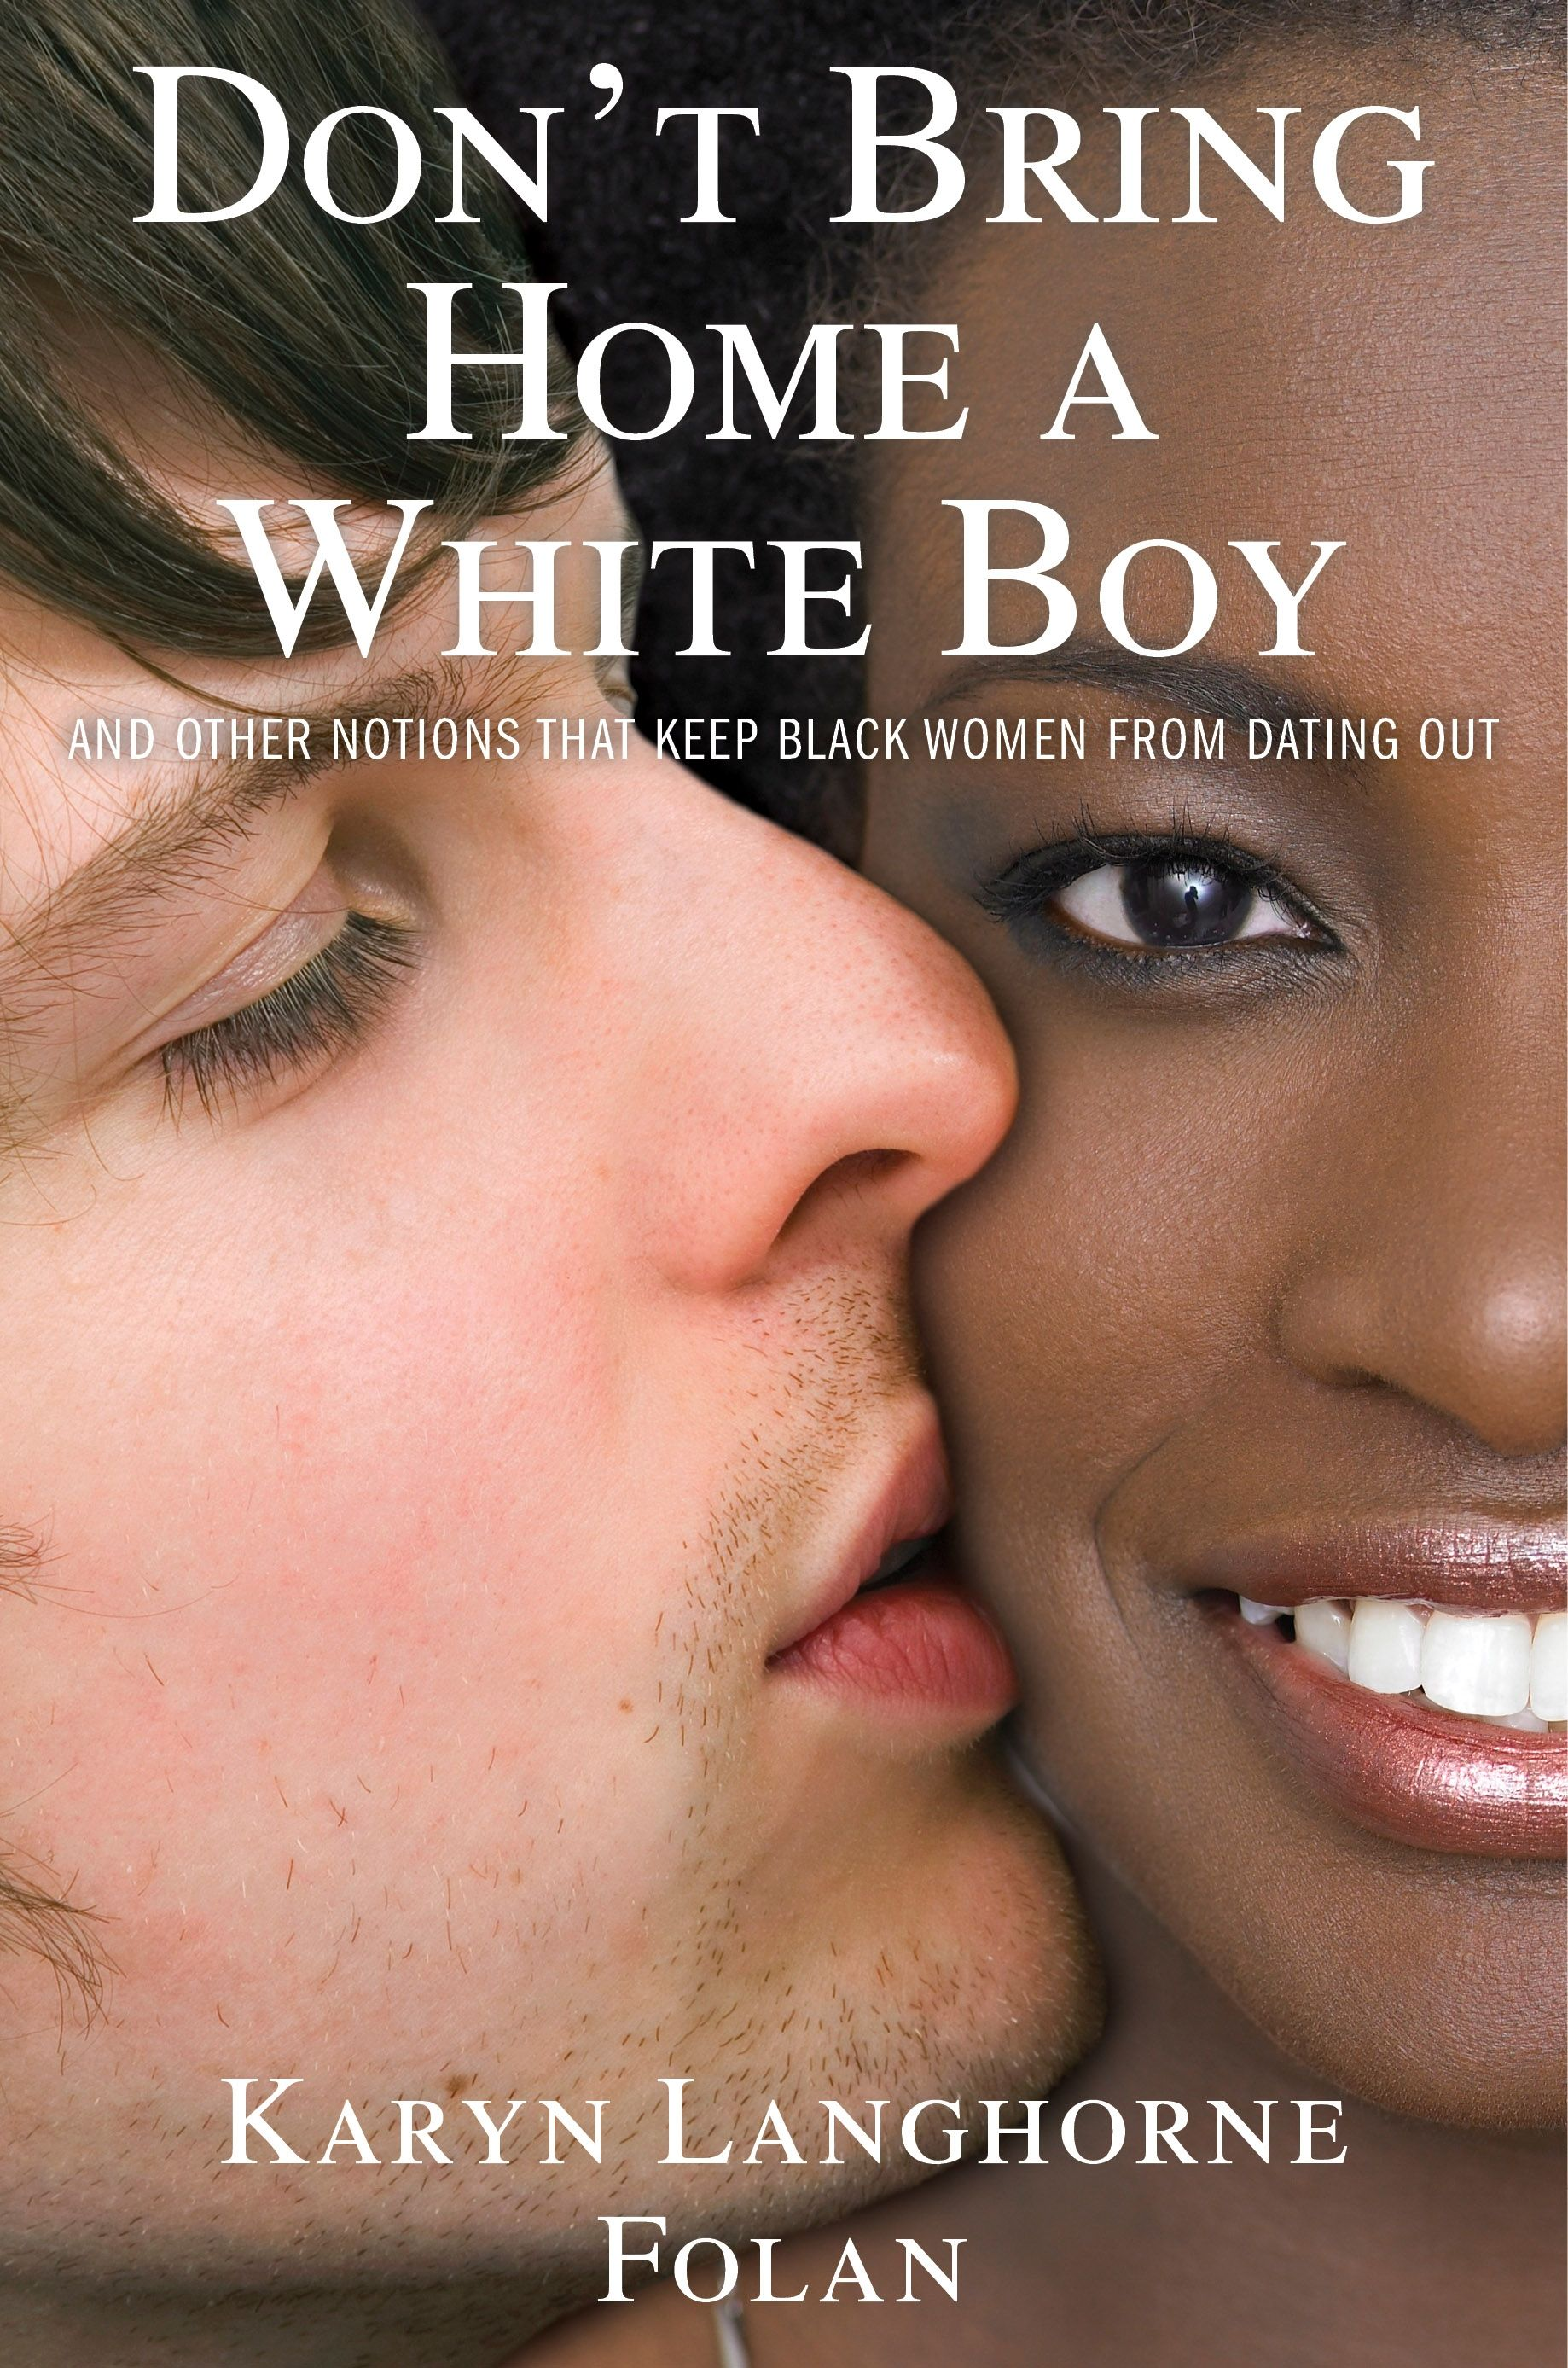 pin by basement to penthouse on interracial dating because the myths stand so strong about interracial relationships authors are are simmering some of those